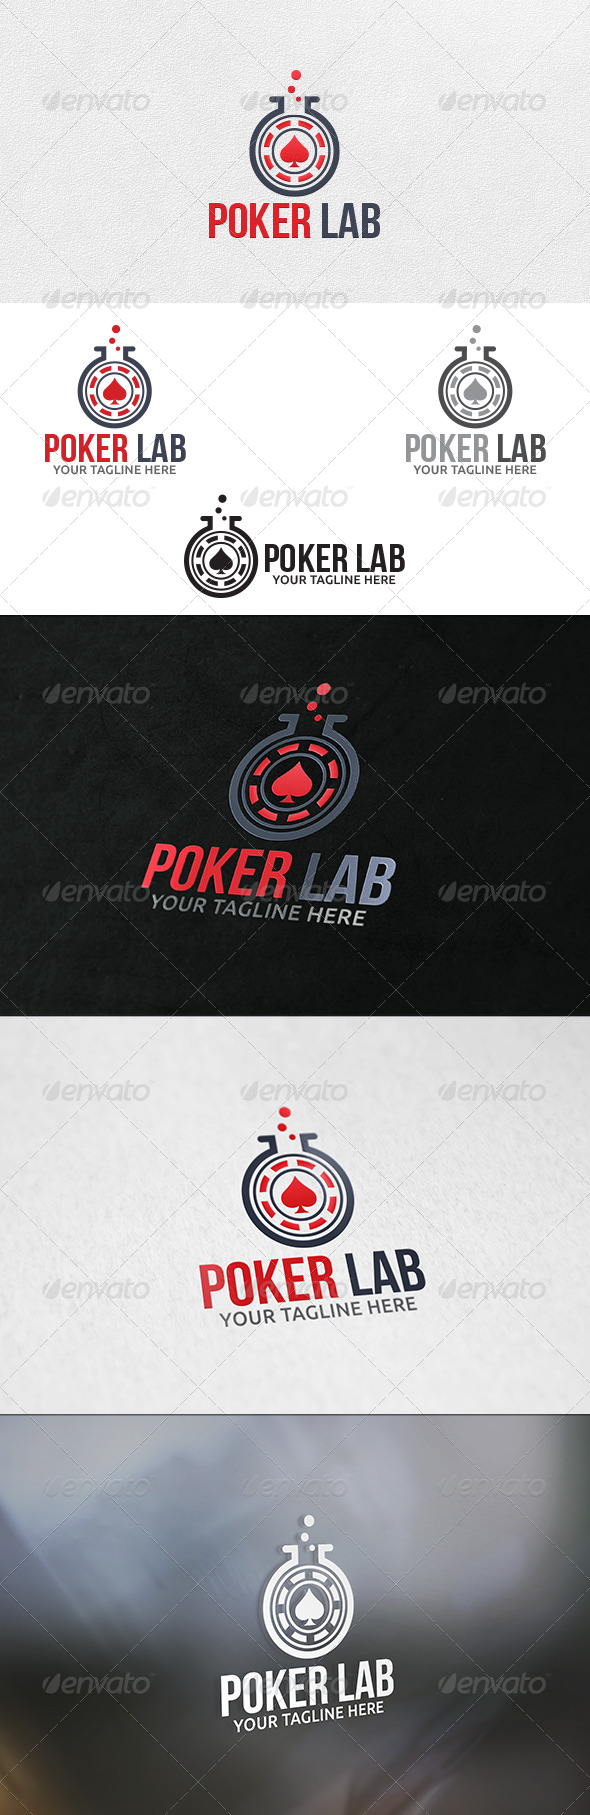 Poker Lab Logo Template